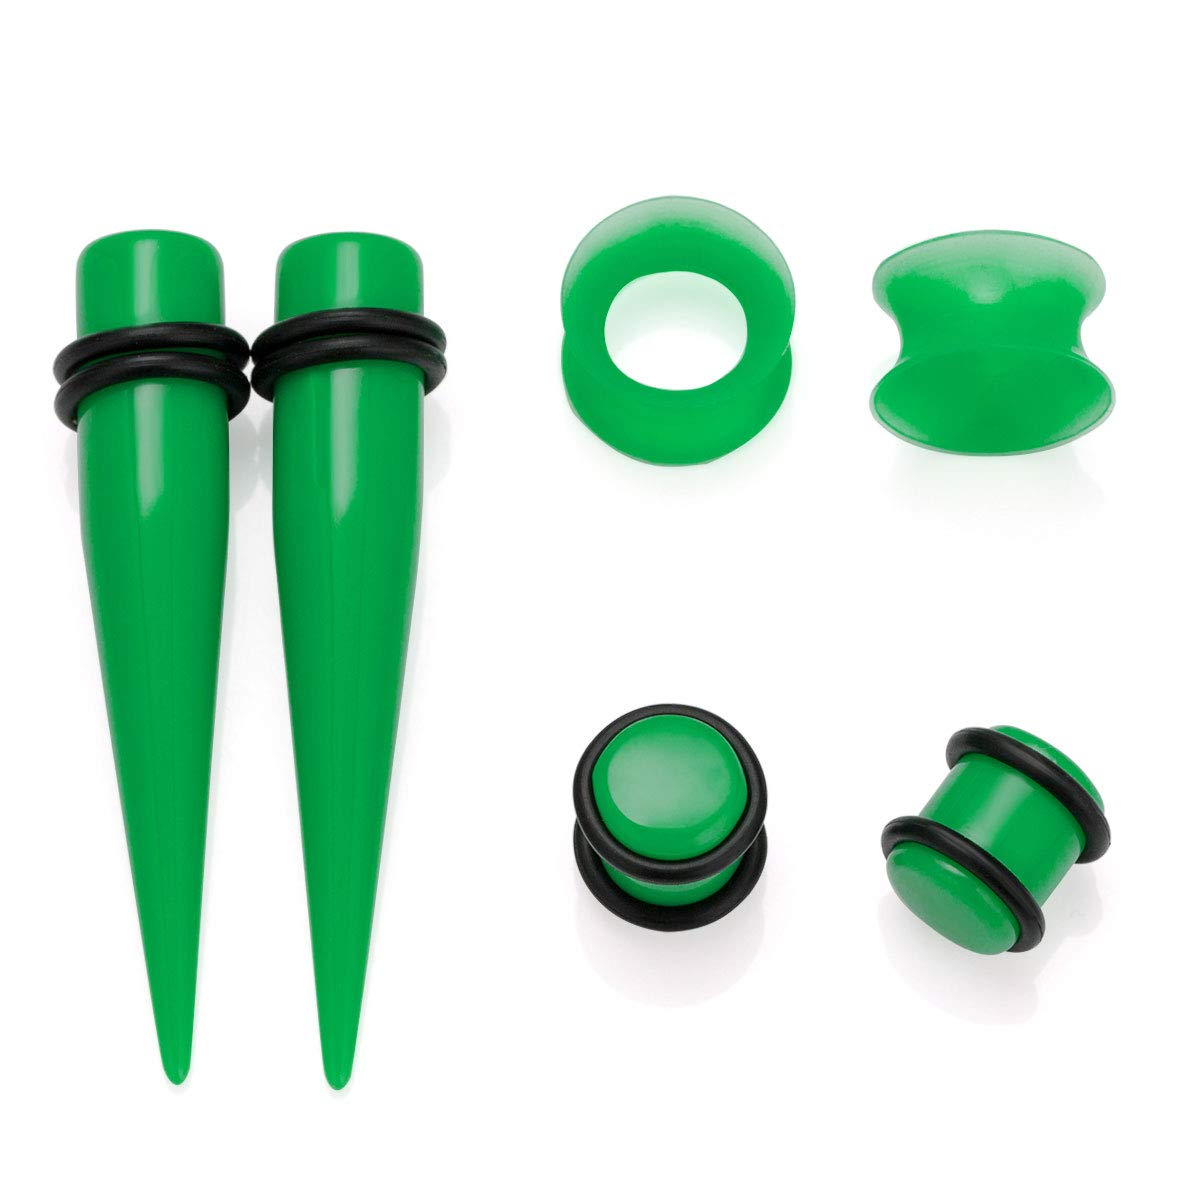 NASAMA 50Pcs Ear Gauge Stretching Kit 14G-00G Tapers Plugs Silicone Tunnels Gauges Expander Set Body Piercing Jewelry